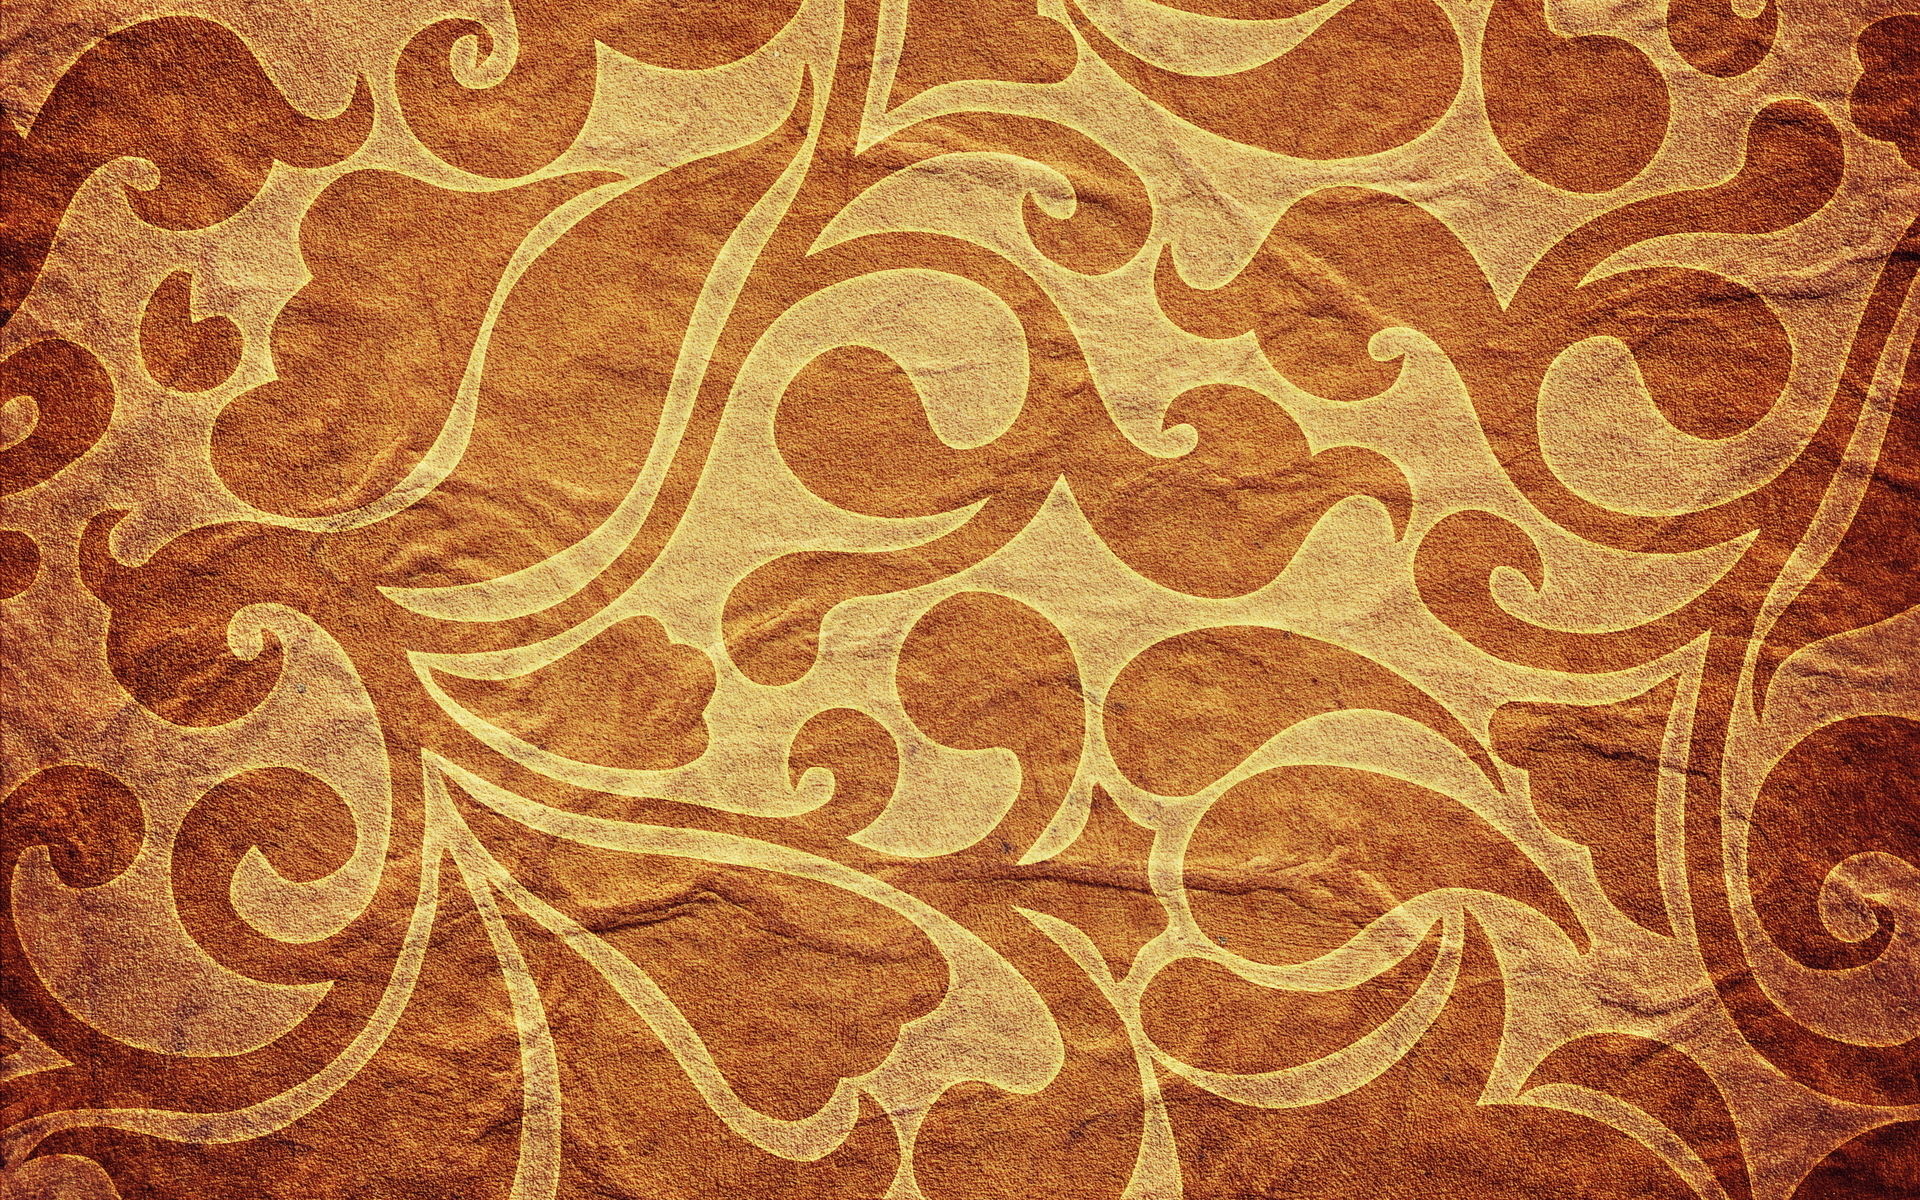 Brown Wallpaper HD Background Texture | photoboothbackgrounds